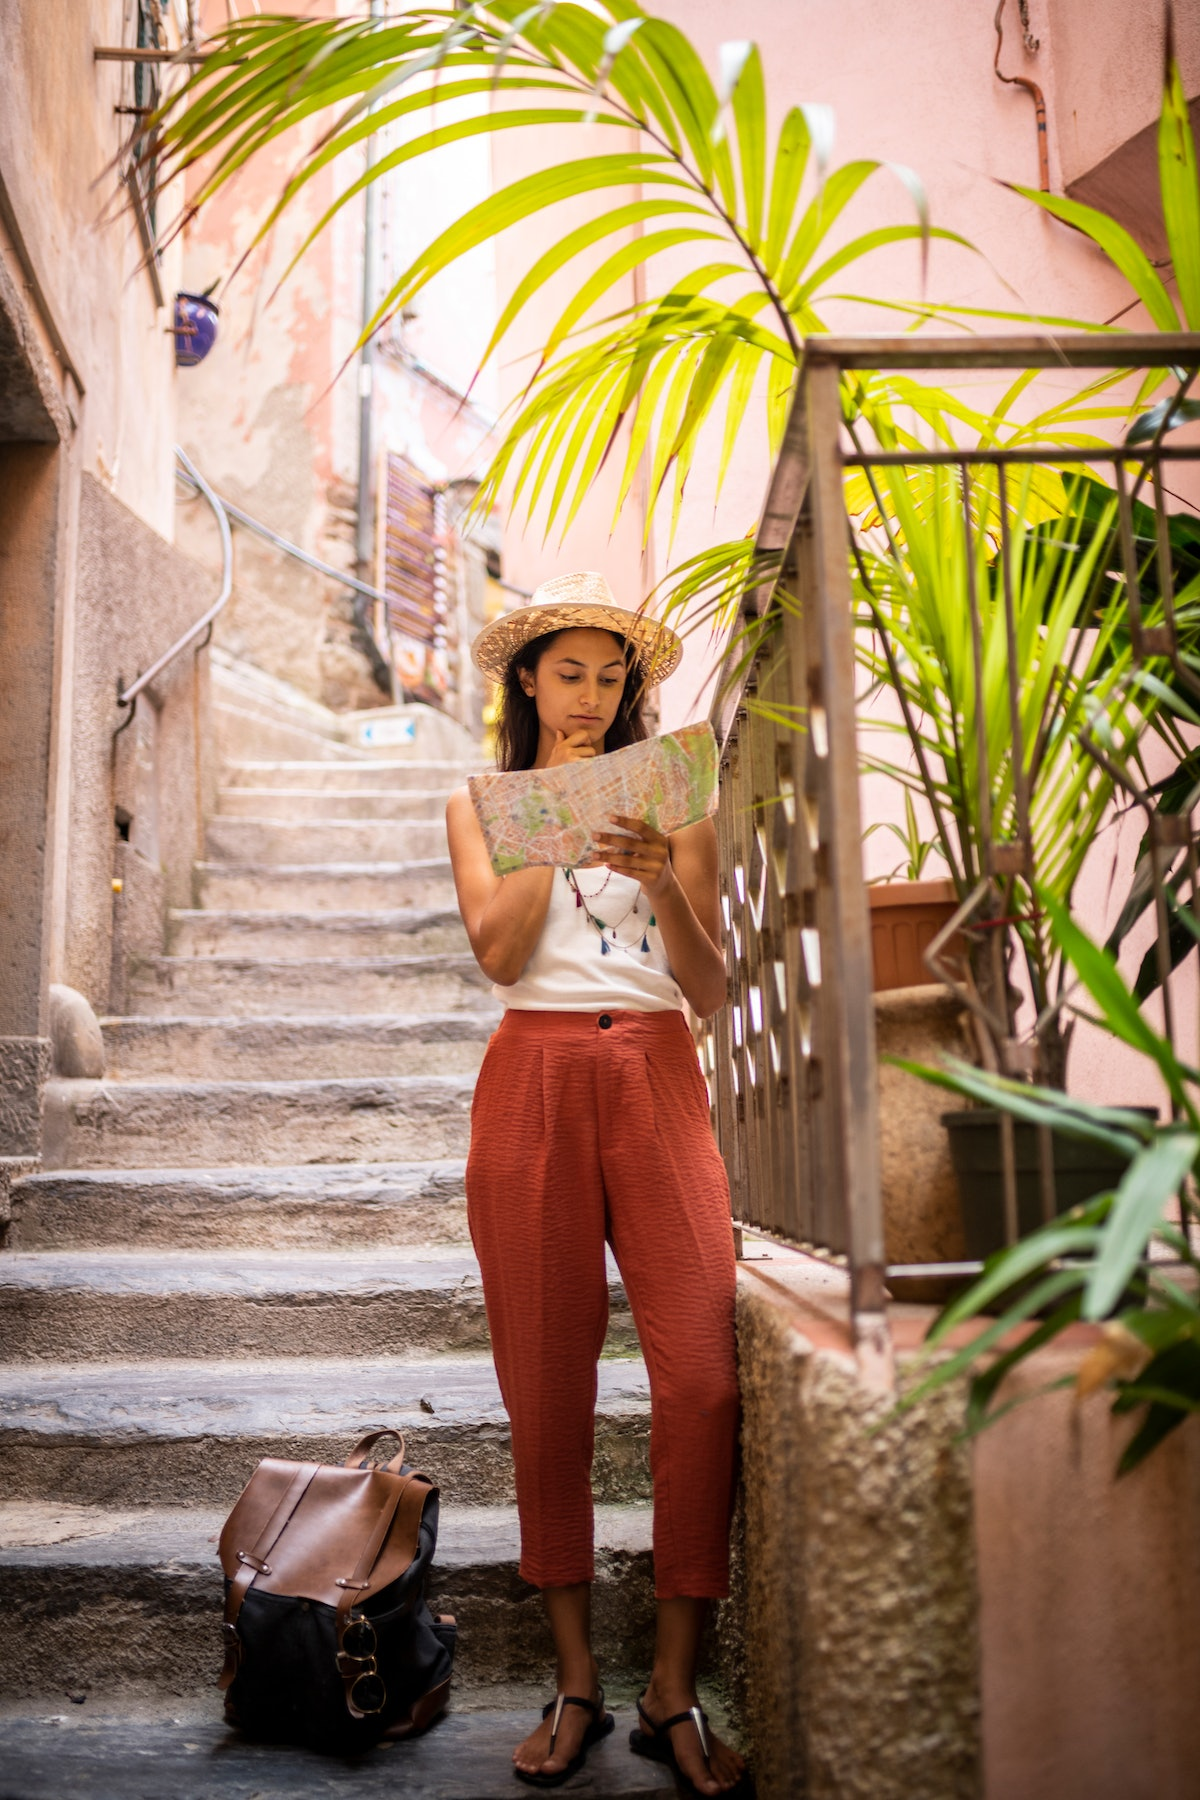 A young woman looks at a map while traveling in Cinque Terre, Italy.